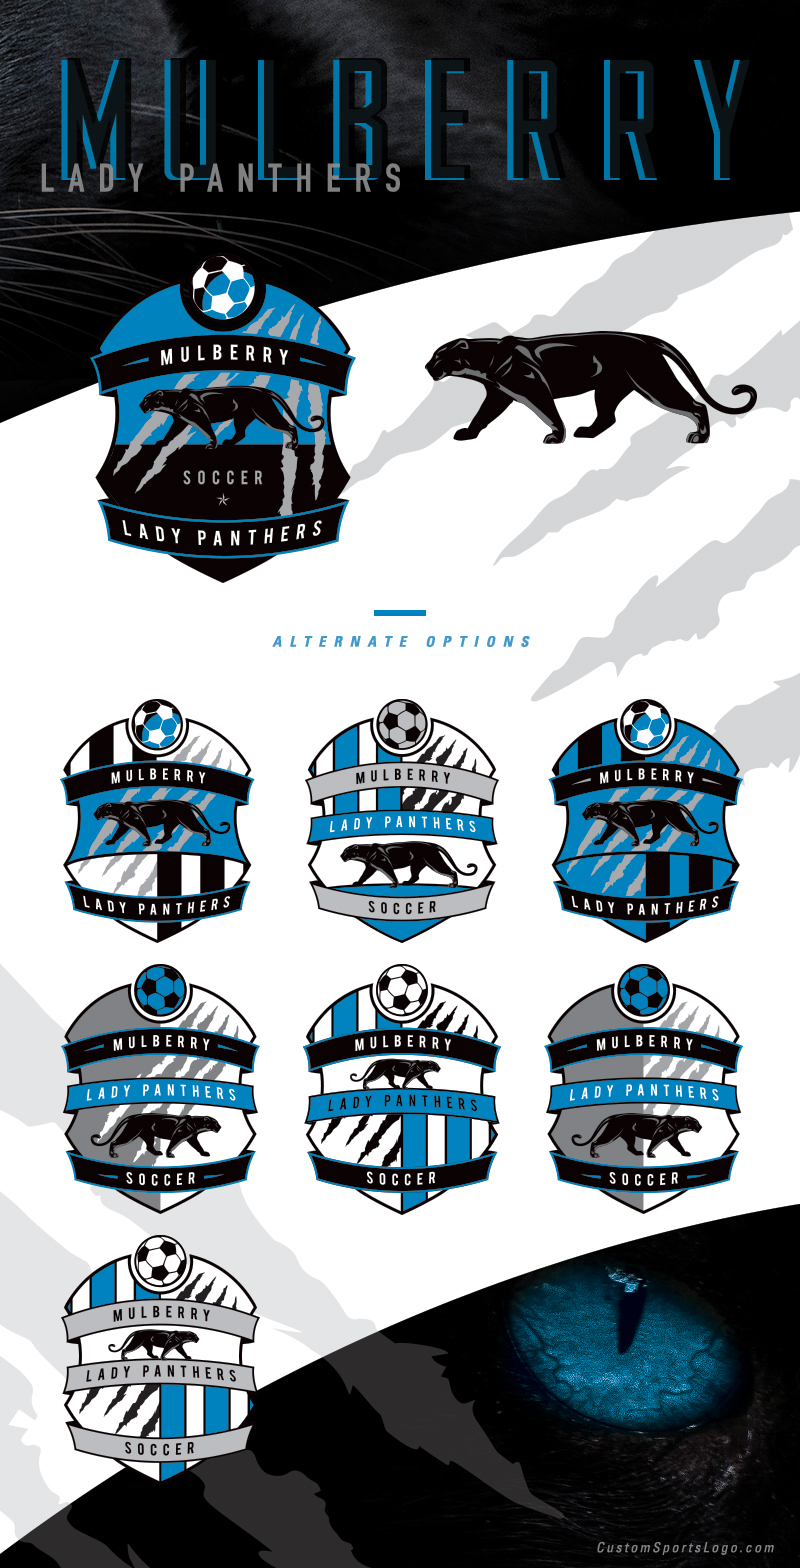 custom-soccer-logo-design-options-for-lady-panthers-soccer-2.jpg